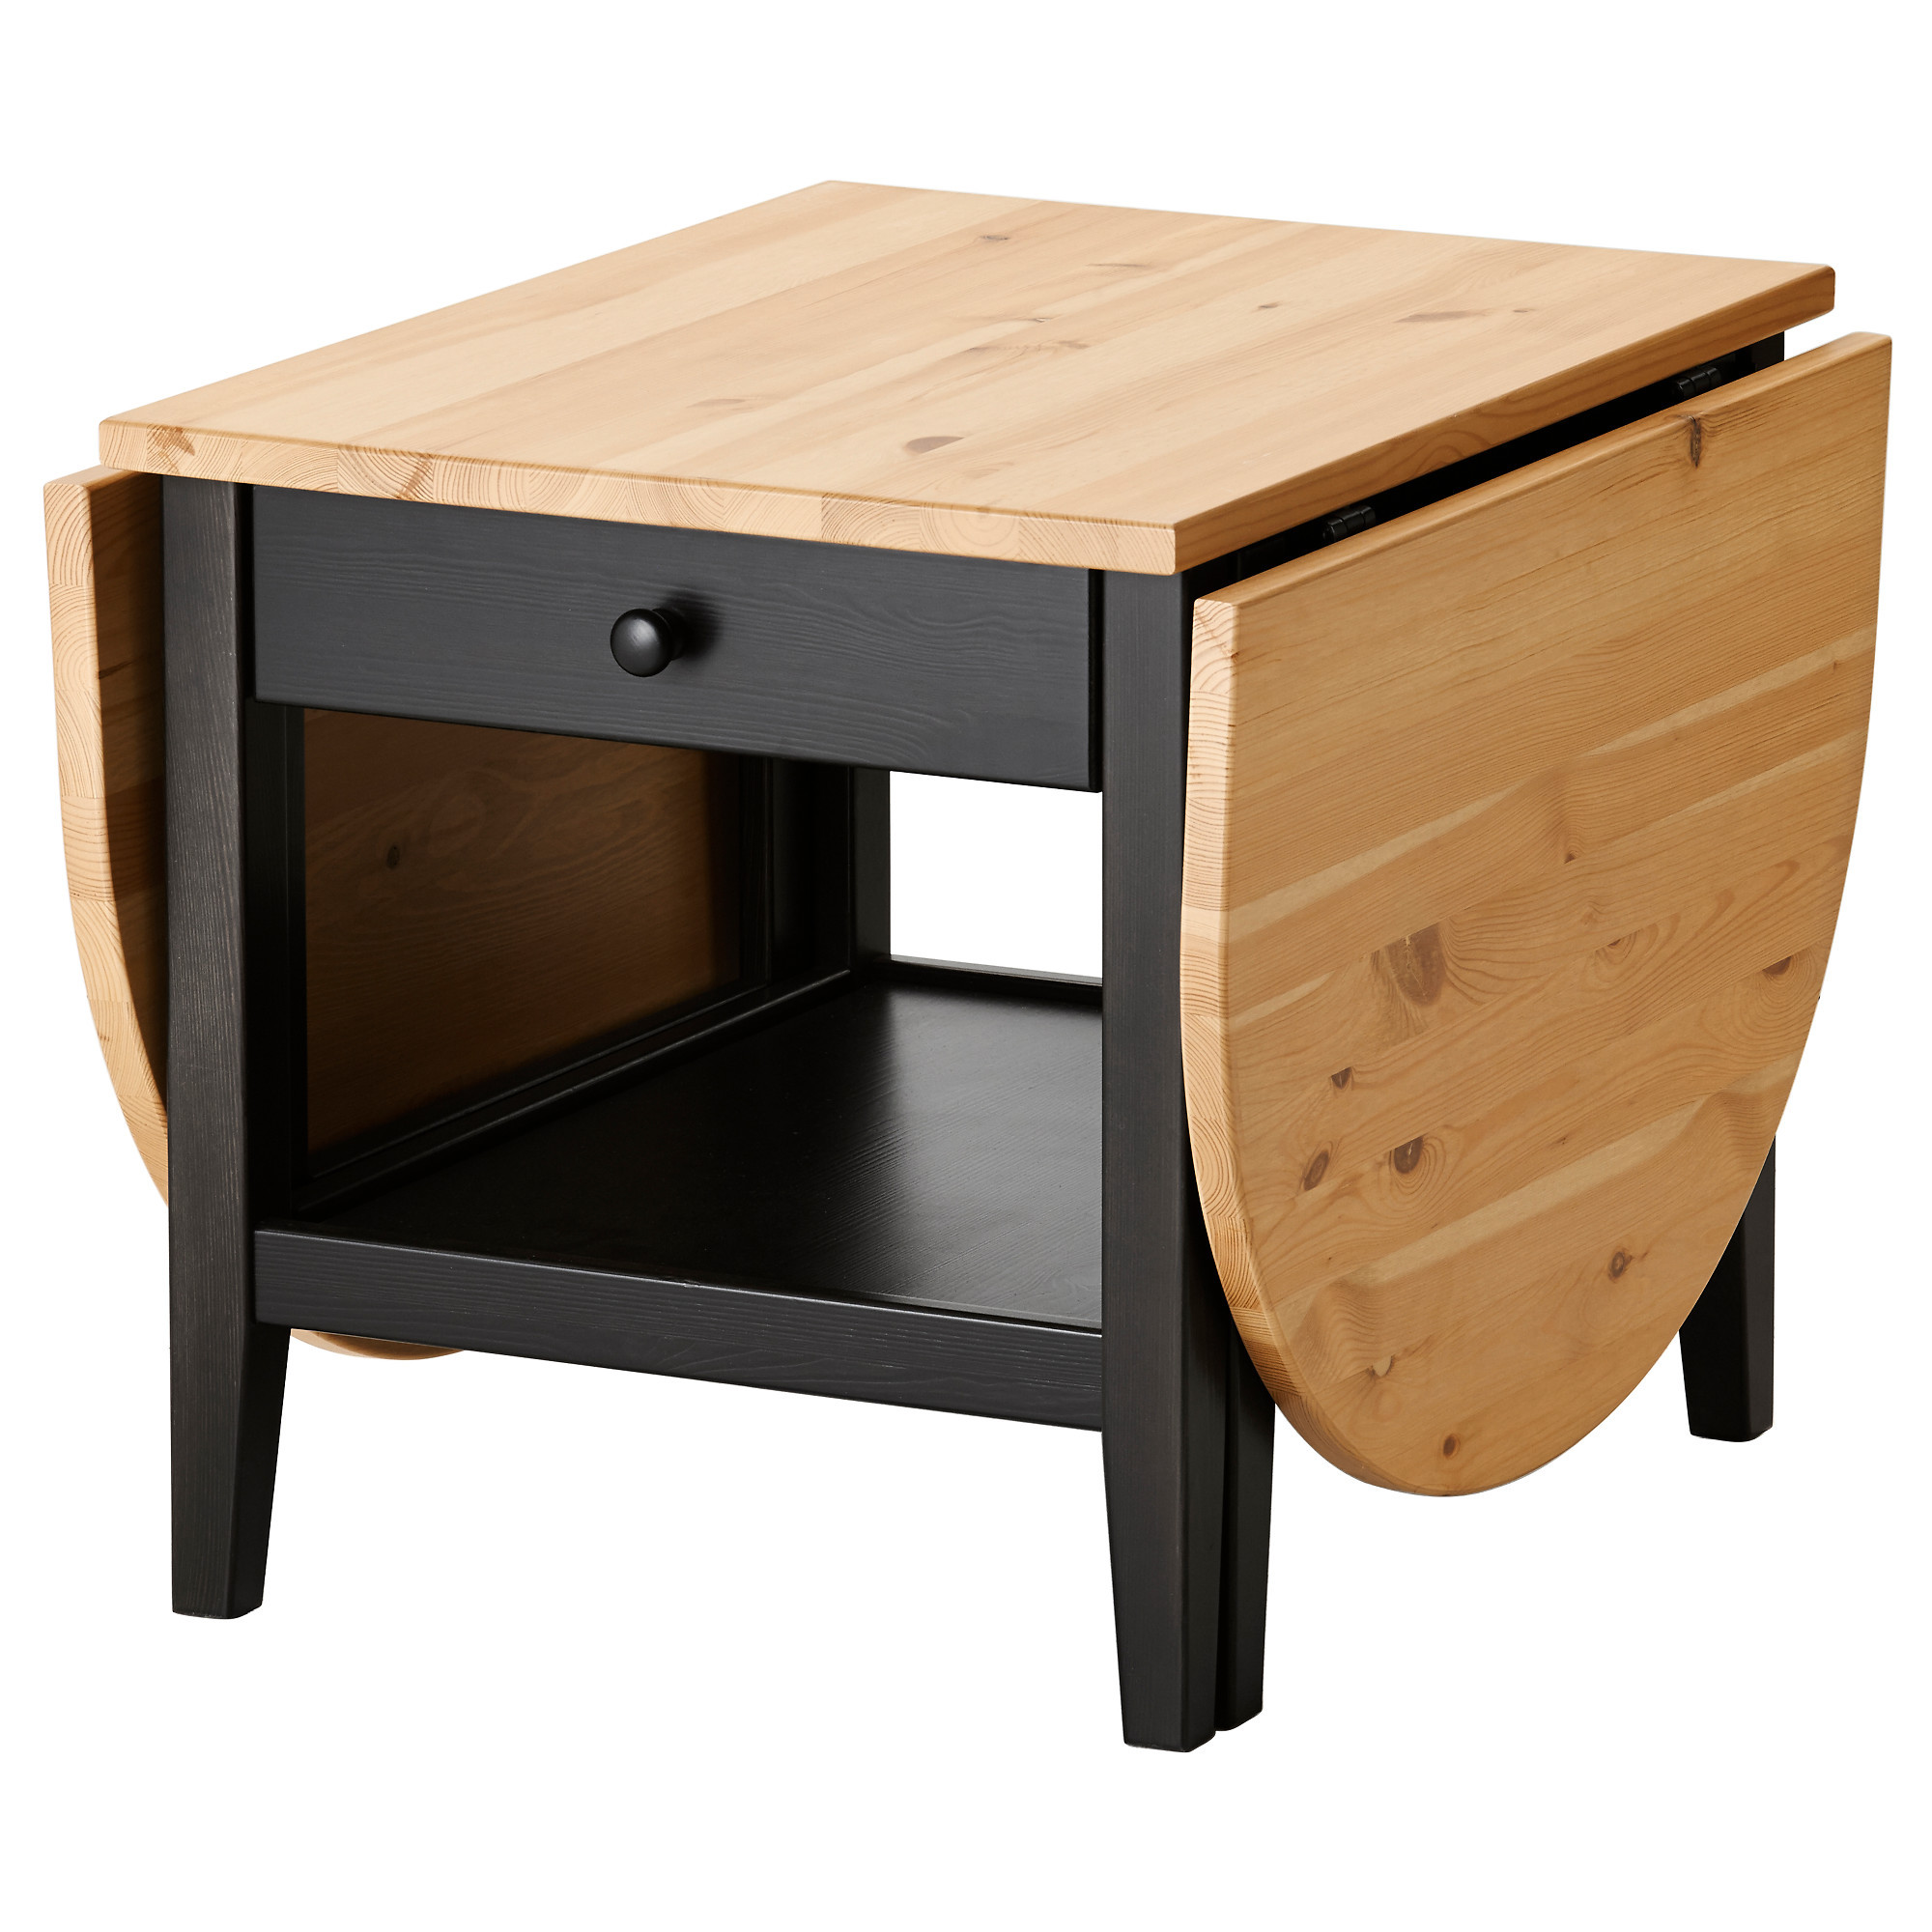 Ikea Folding Table With Drawers ~ Table with Drawers Drop Leaf Tables for Small Spaces drop leaf table